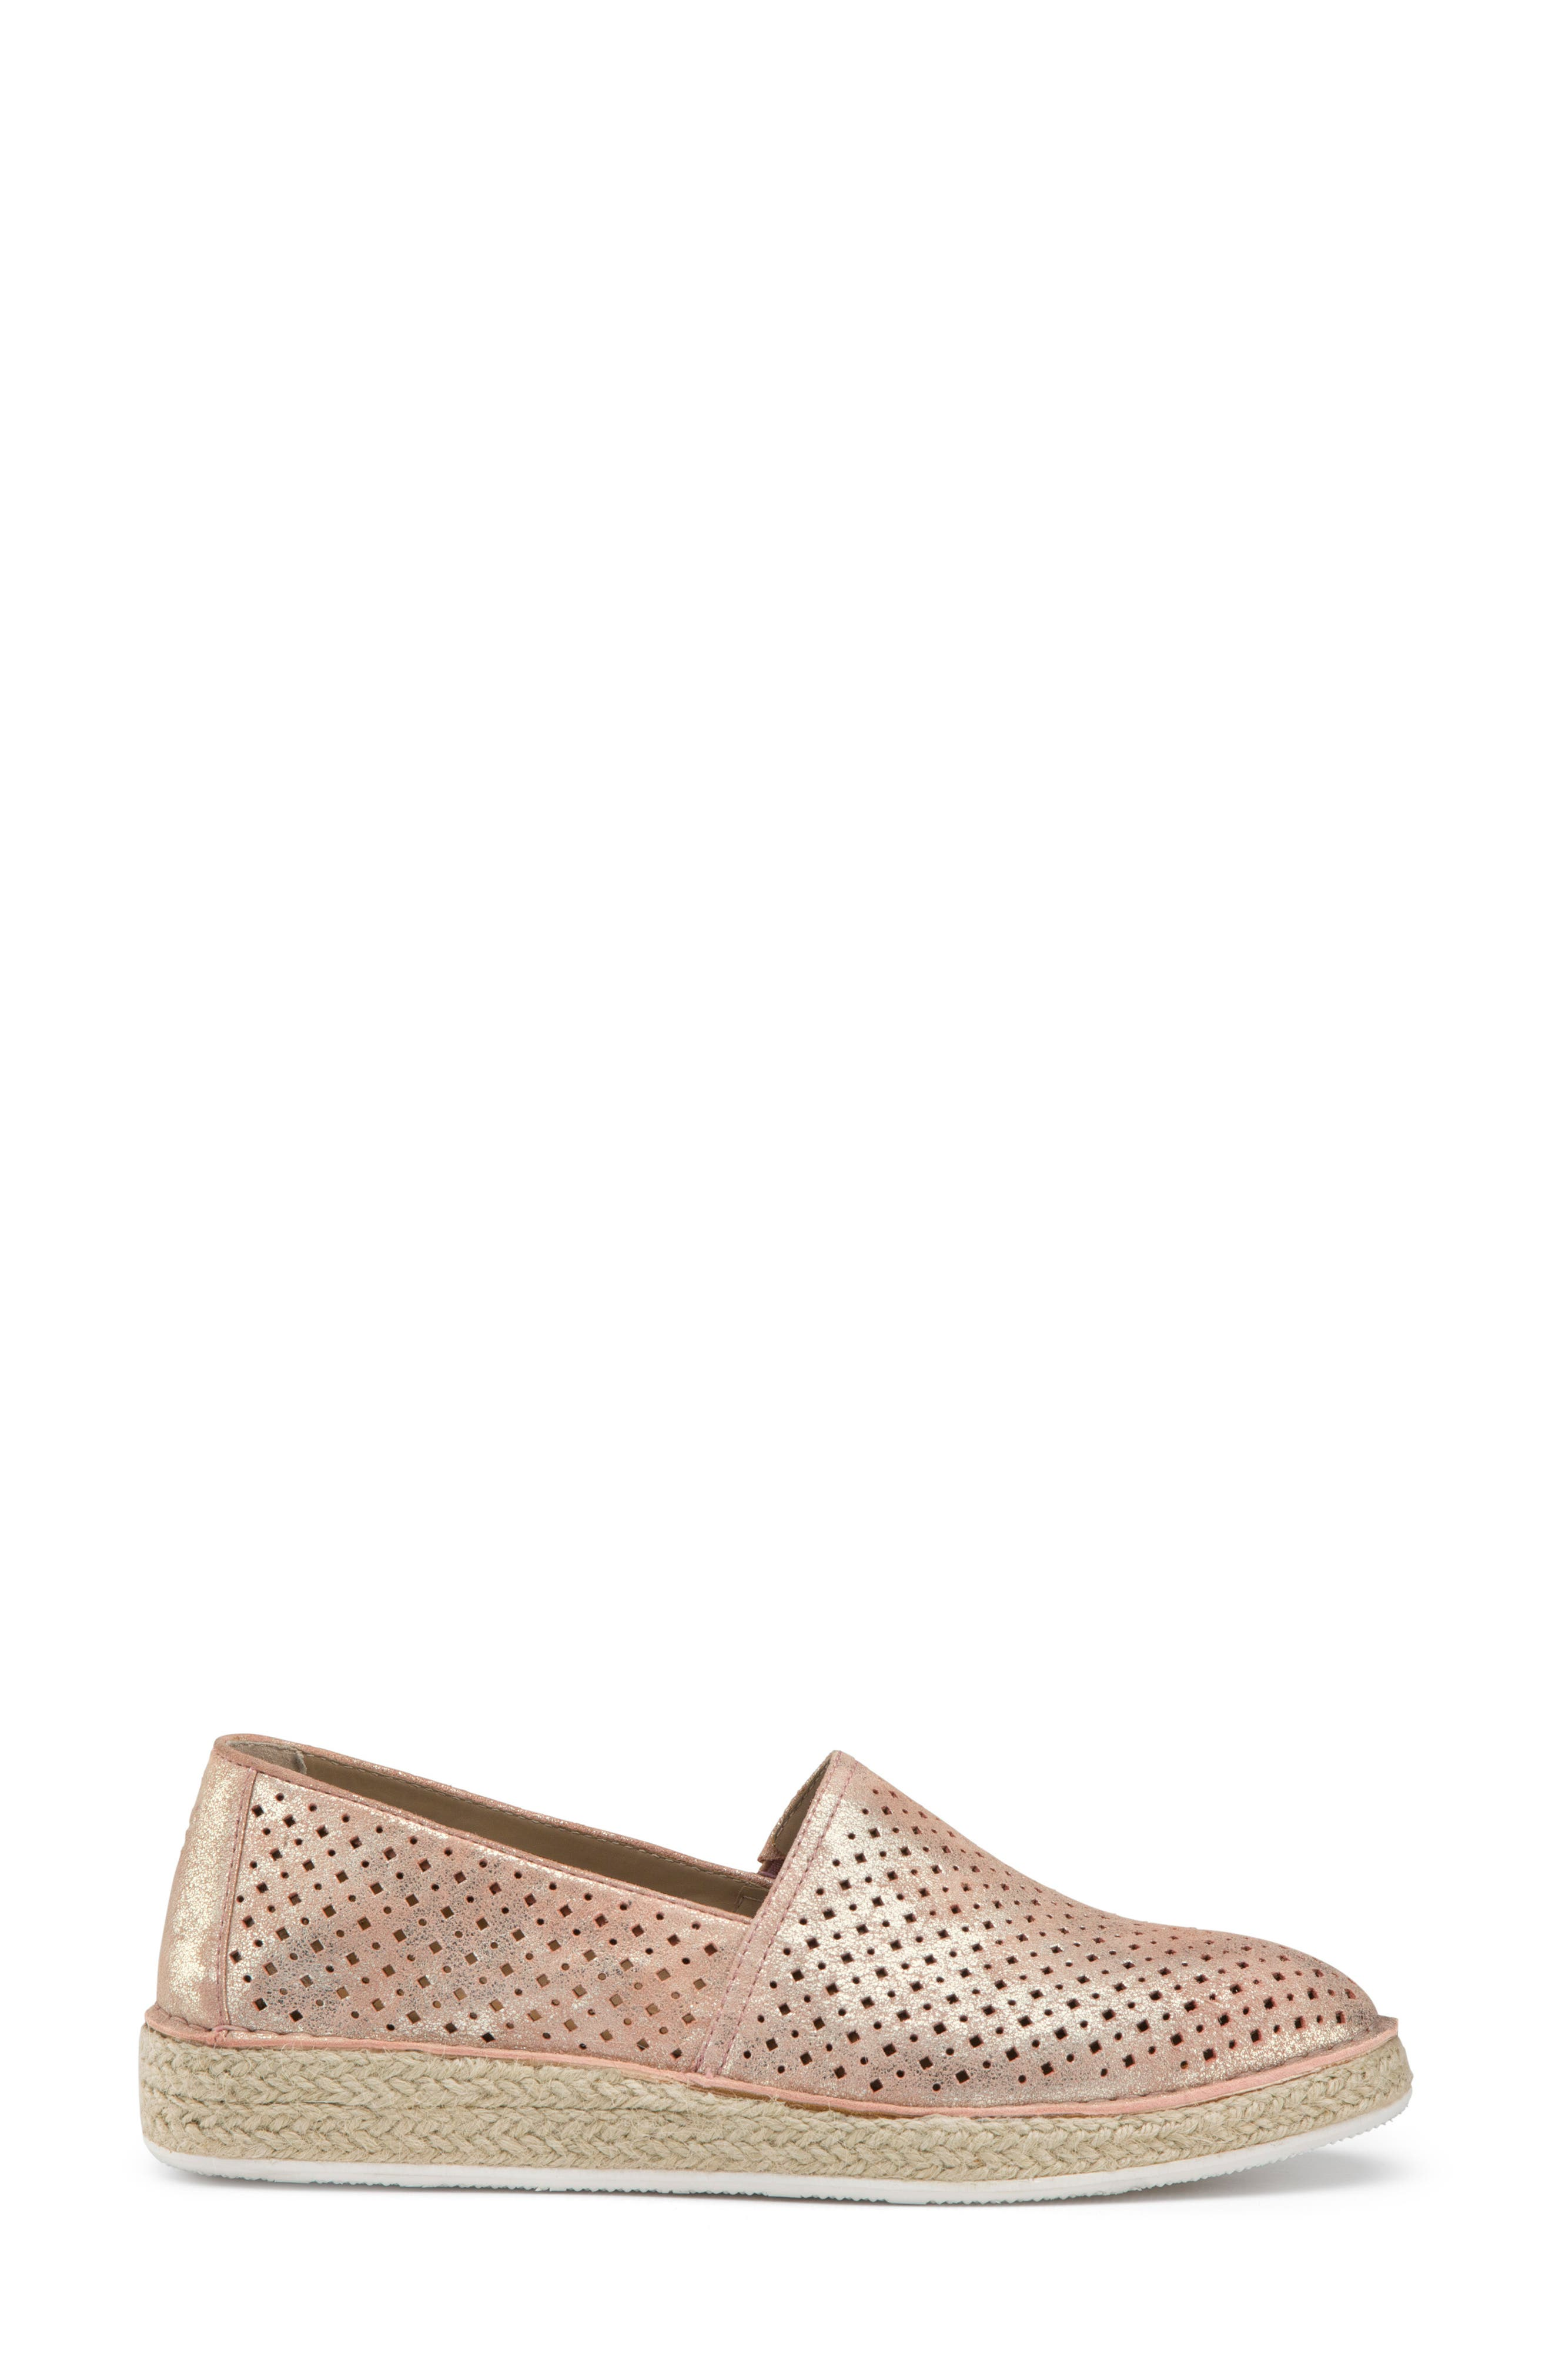 Paige Perforated Flat,                             Alternate thumbnail 3, color,                             Blush Metallic Suede